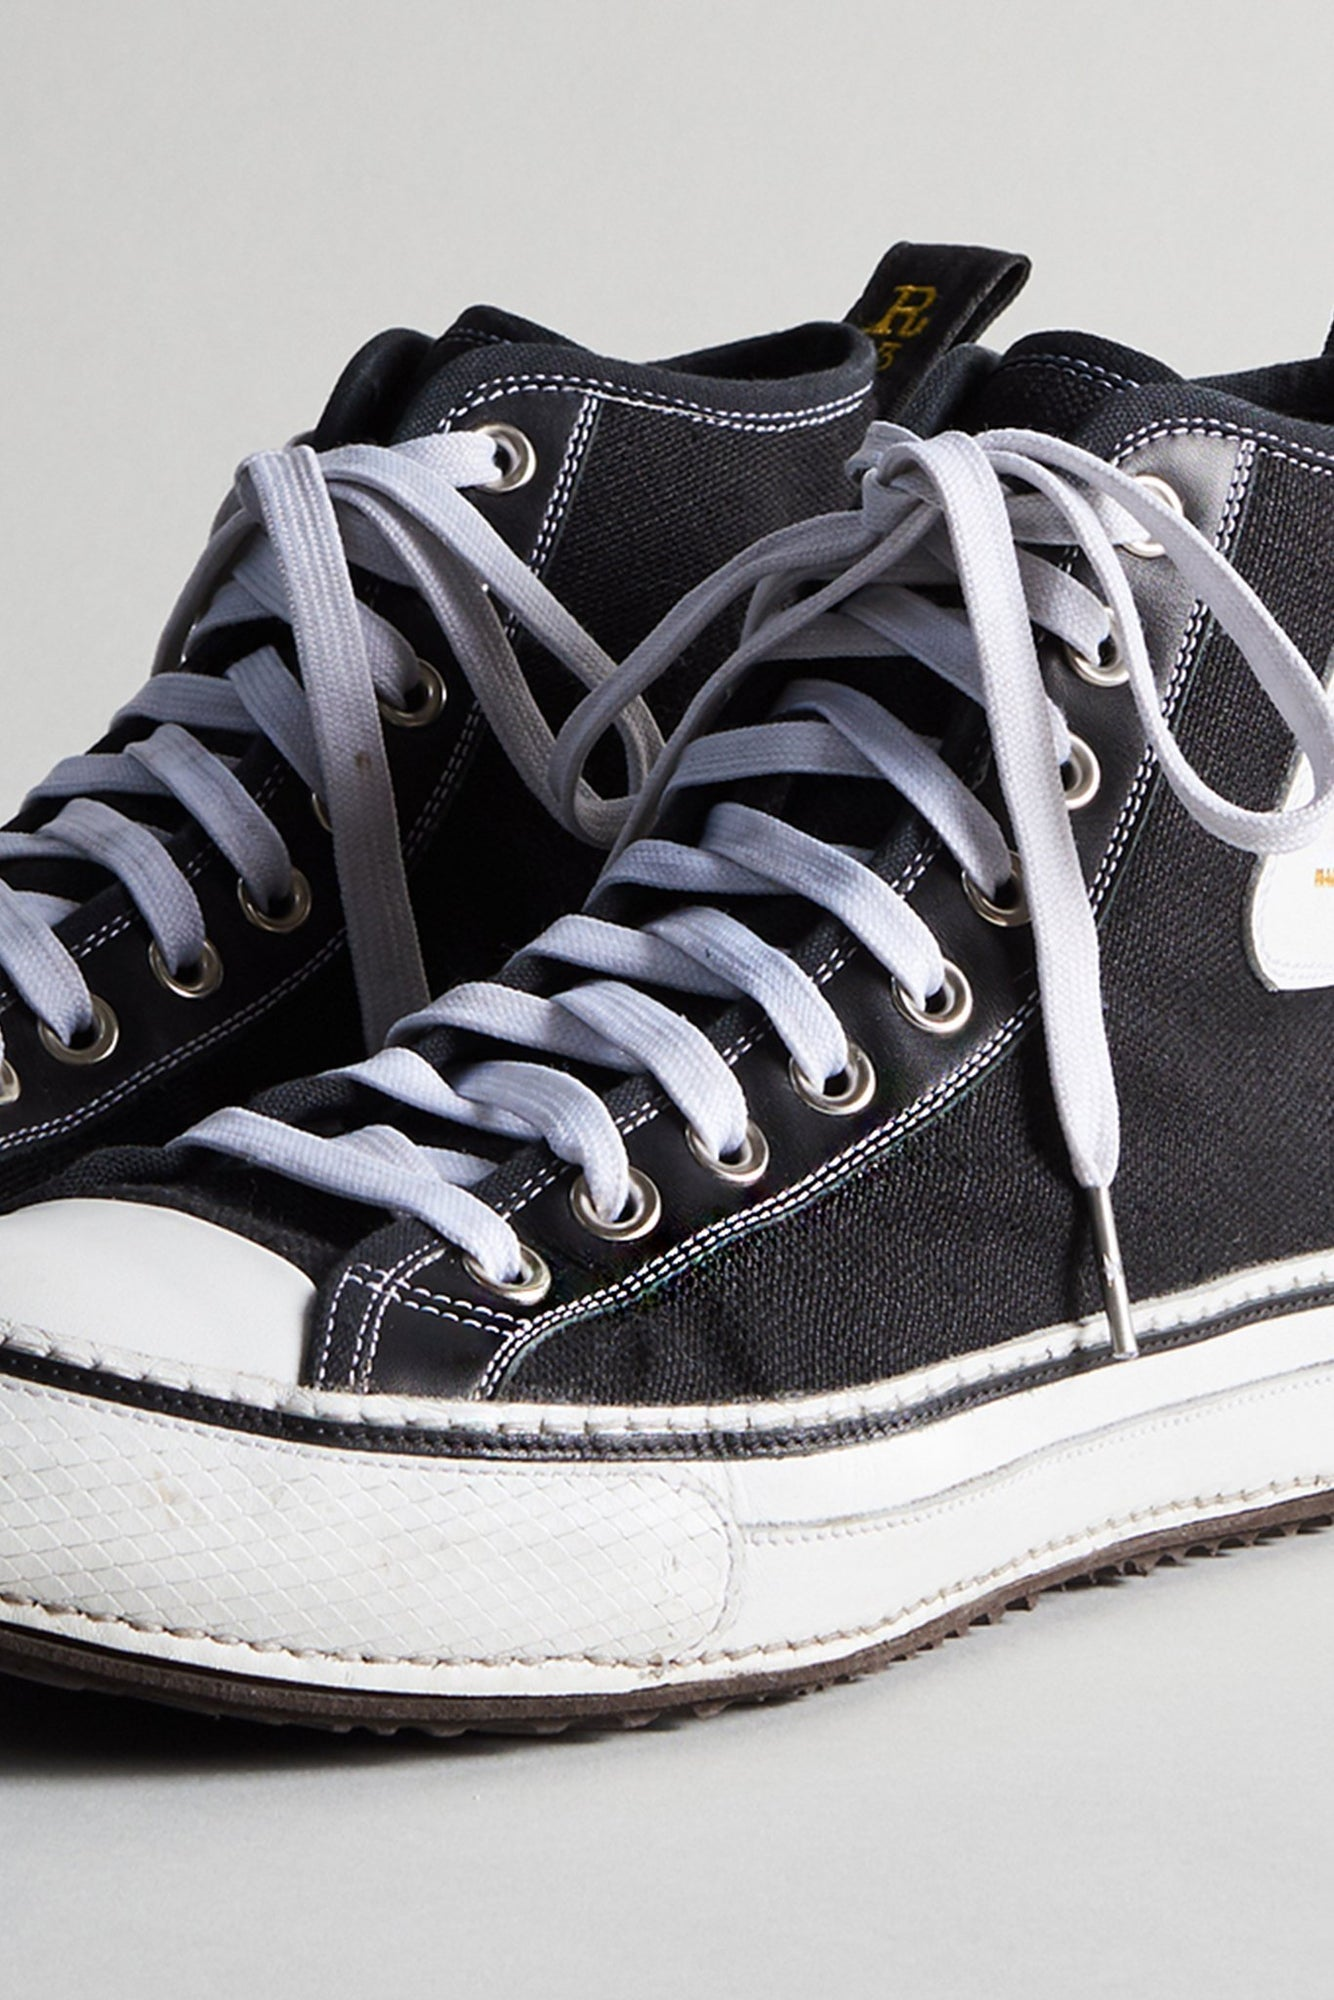 R13 High Top - Black + White